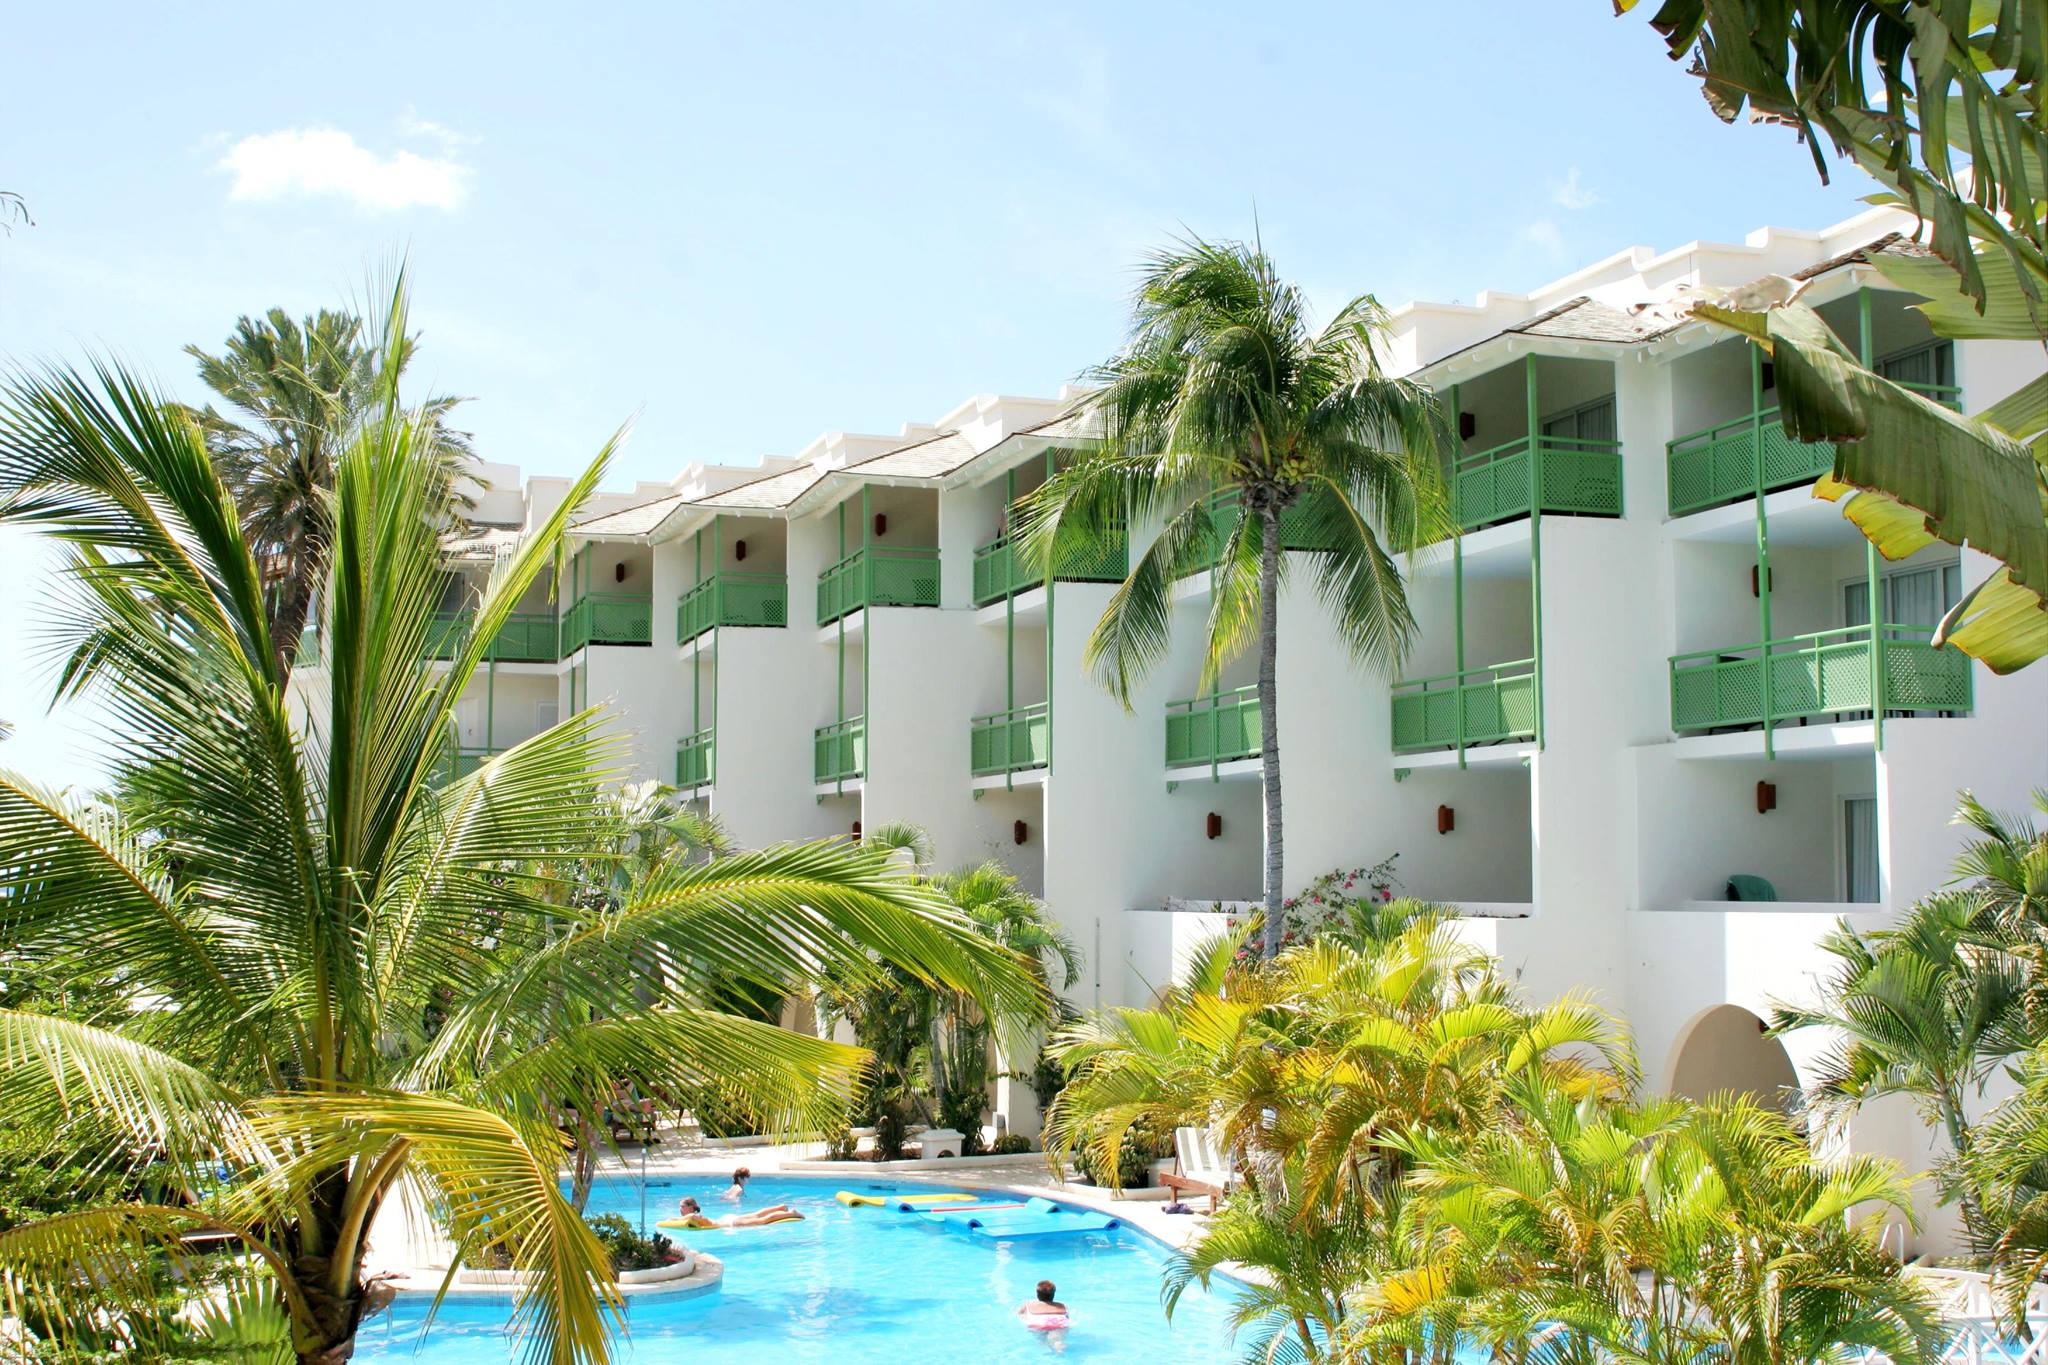 Mango Bay Barbados Reviews: 2016 (UPDATED) 4 Star All Inclusive